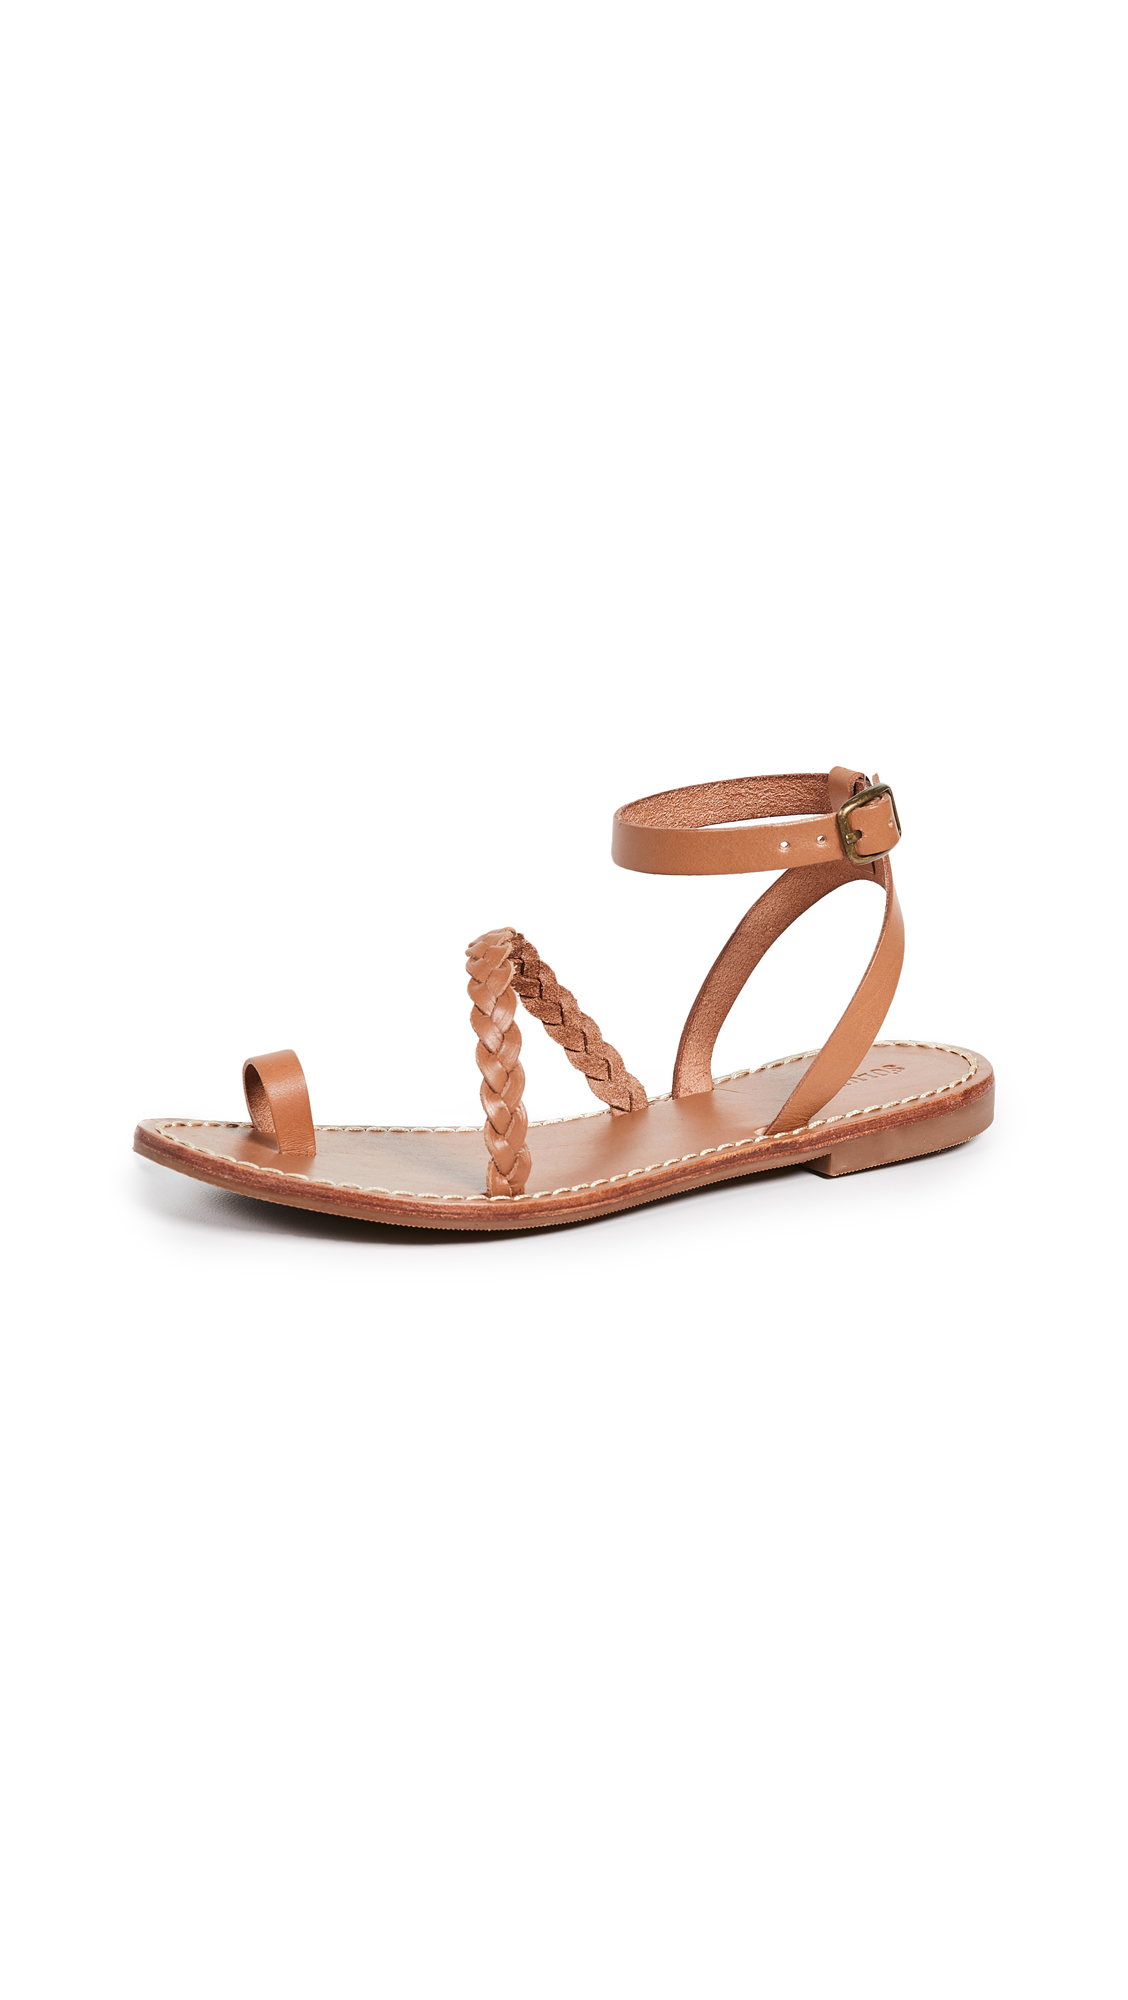 Soludos Madrid Strappy Braided Sandals - 30% Off Sale